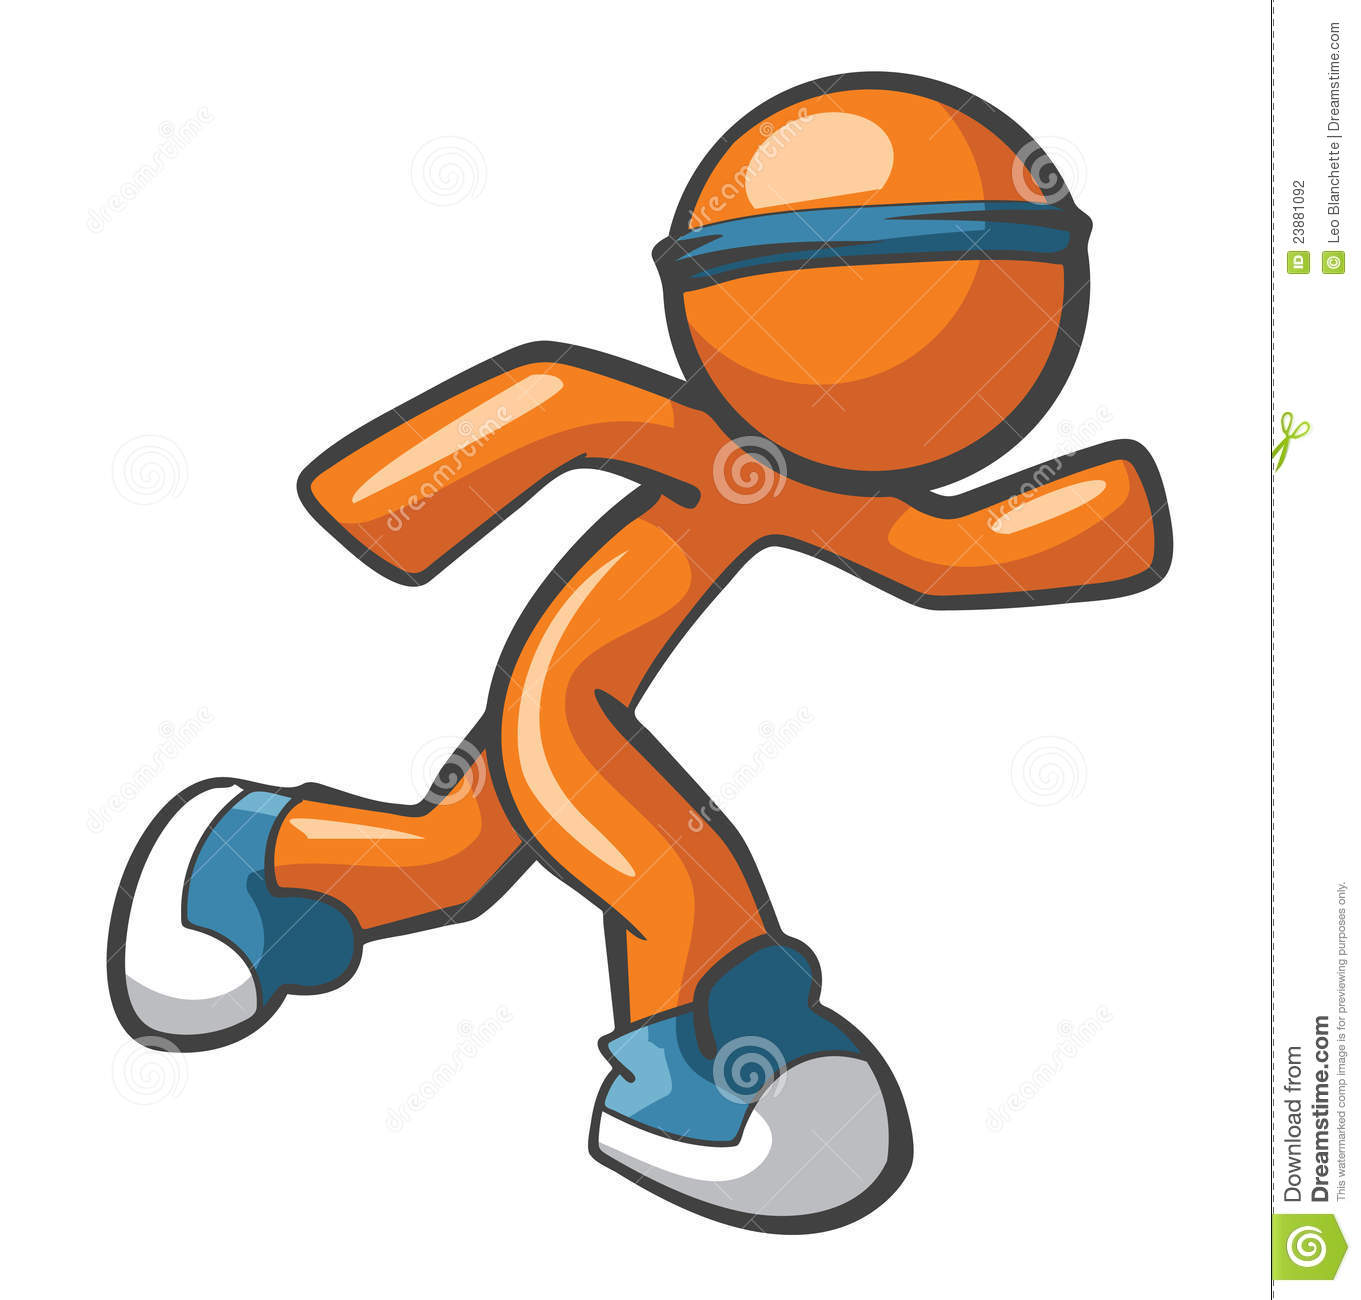 1361x1300 Running Walking Clipart, Explore Pictures